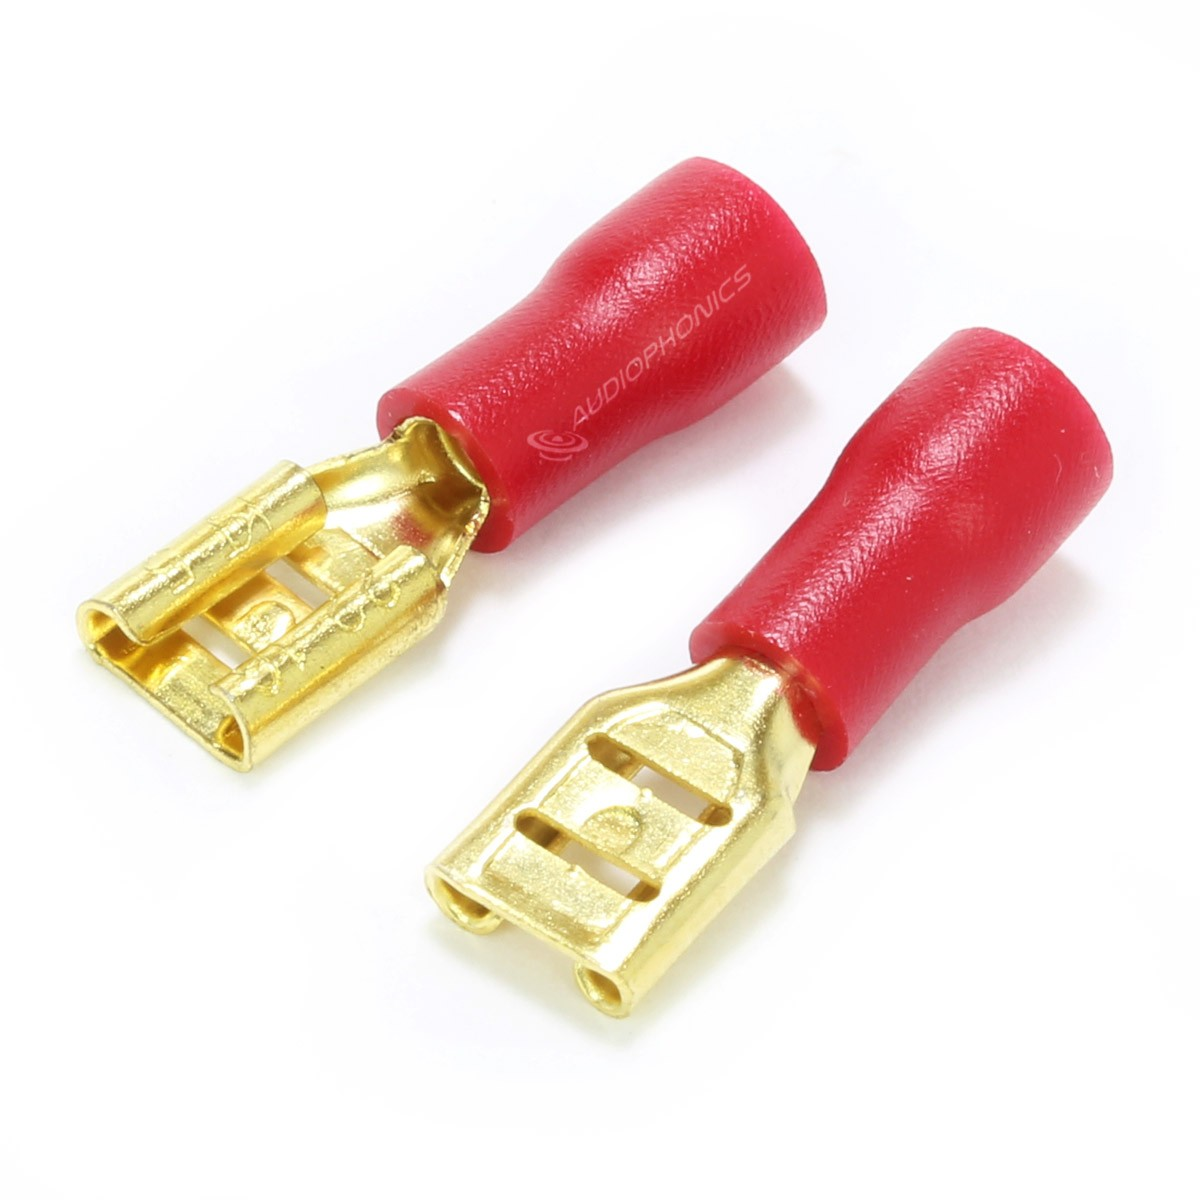 MUNDORF 4.8G Female Blade Connectors 4.8mm Isolated Gold Plated 0.5-1.5mm² Red (Set x10)